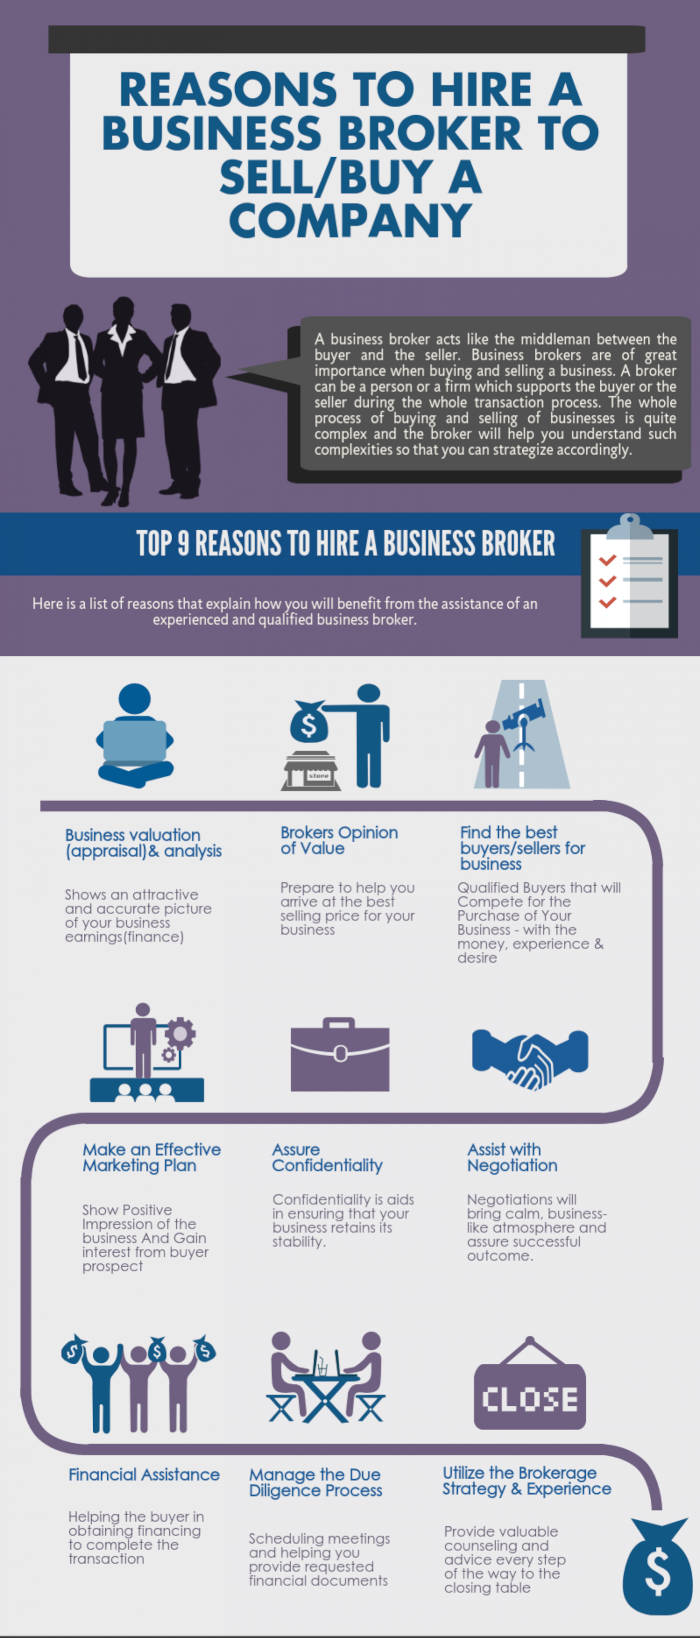 Why Hire Business Brokers